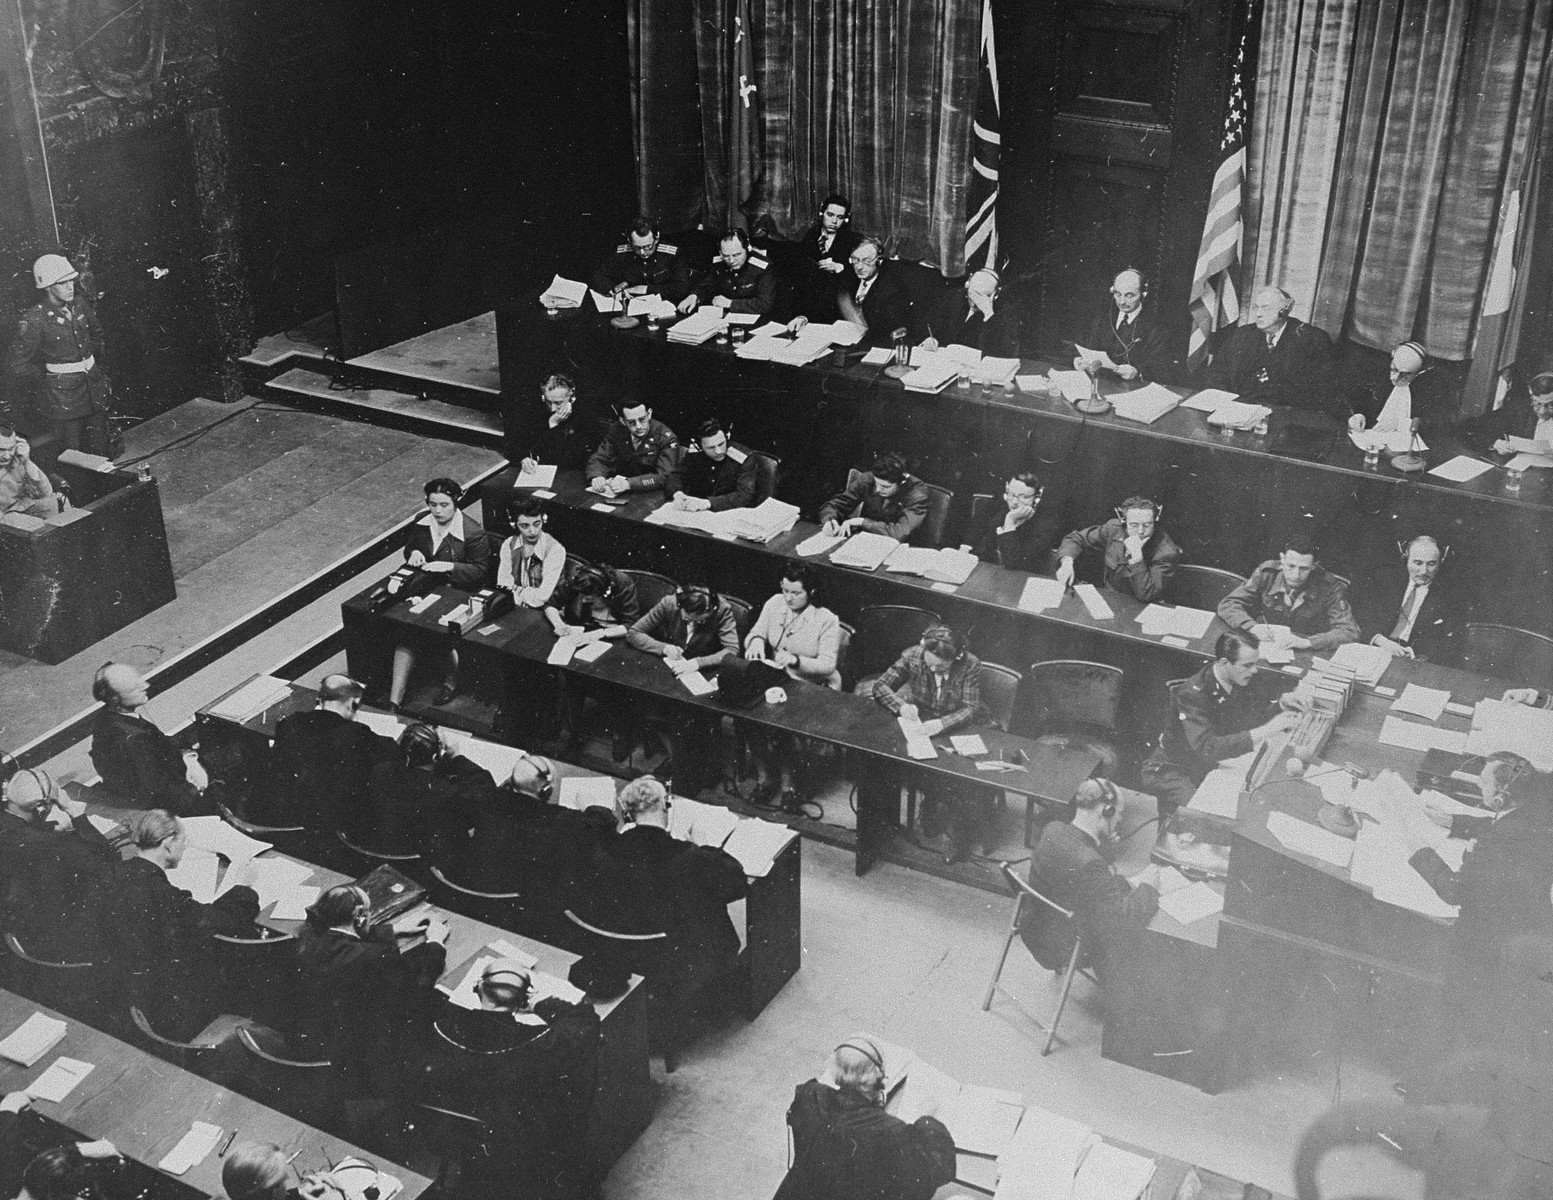 Chief U.S. prosecutor Justice Robert H. Jackson (bottom right) questions defendant Hermann Goering (seated left) during Goering's testimony before the International Military Tribunal (top) at the trial of war criminals at Nuremberg.